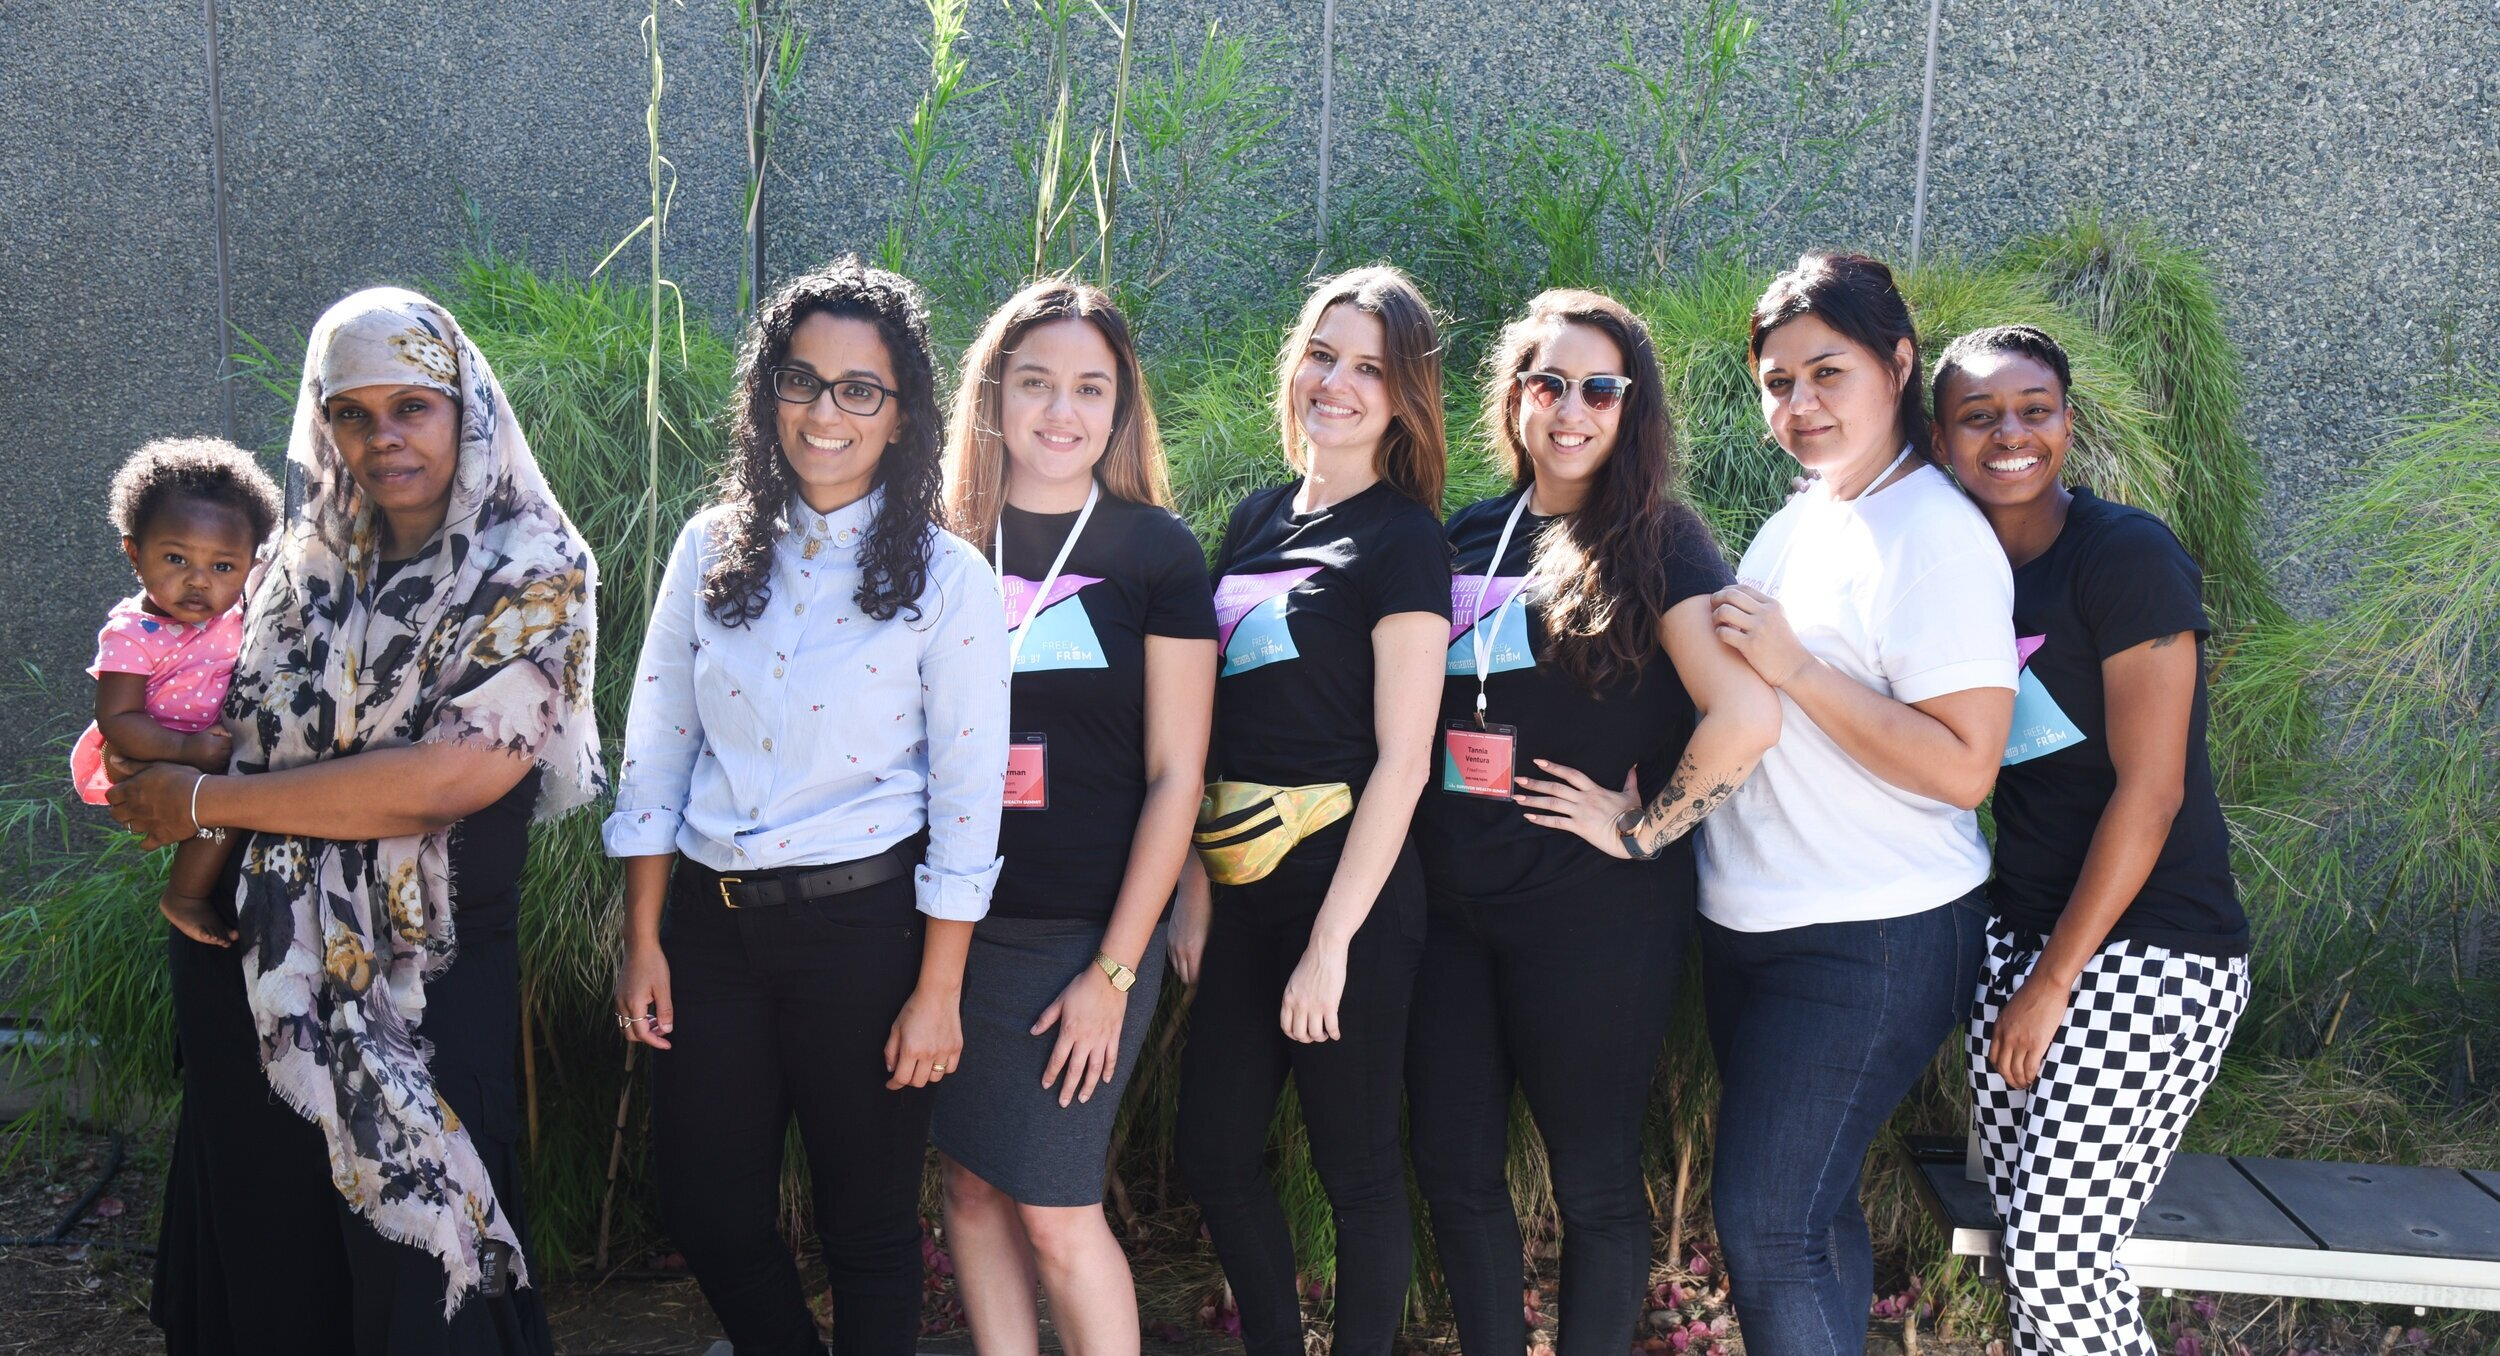 The FreeFrom team members standing close together in front of some green bushes, smiling at the camera